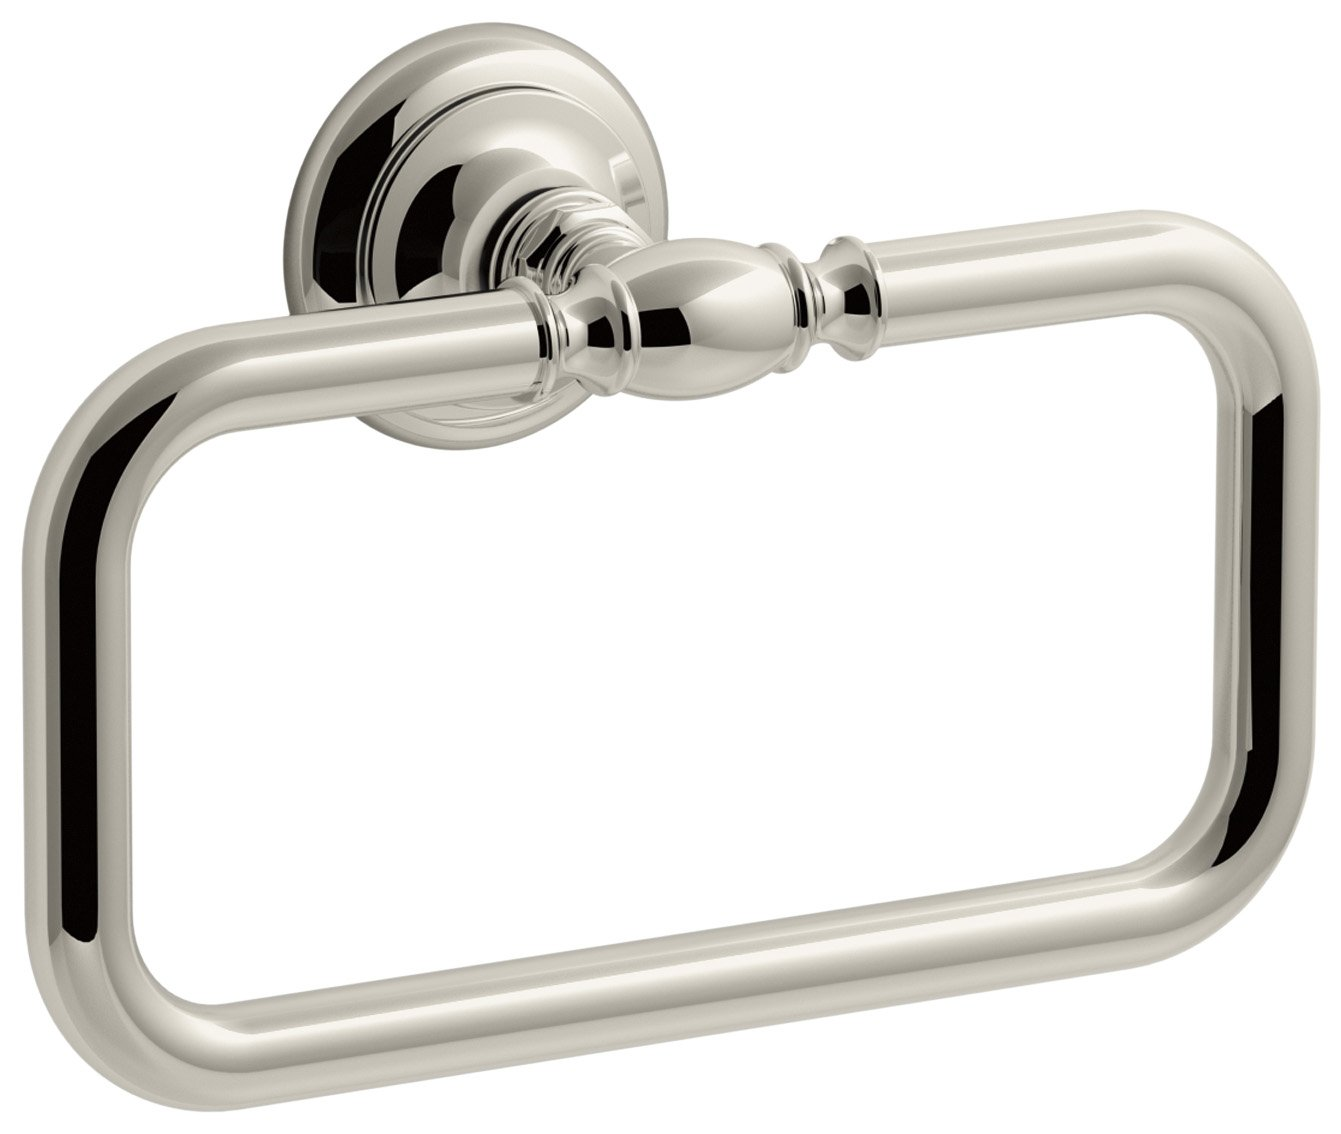 KOHLER K-72571-SN Artifacts Towel ring, Vibrant Polished Nickel